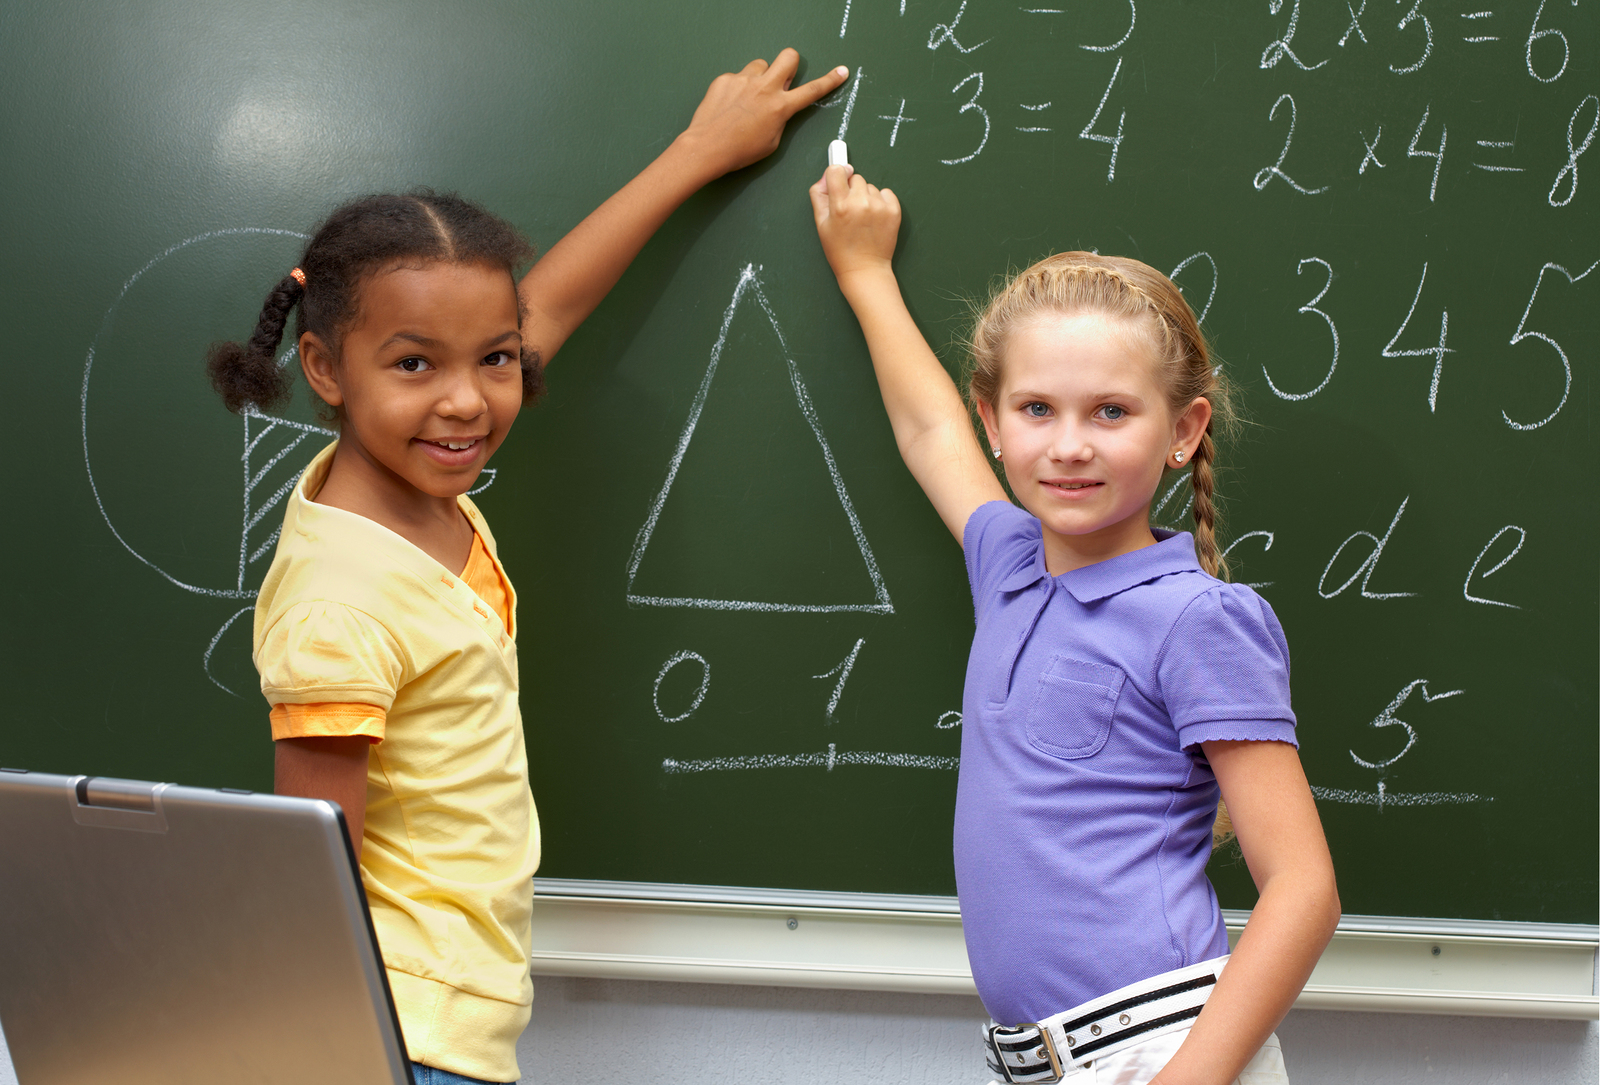 Study: Children Learn Math Best When Moving - Mothering